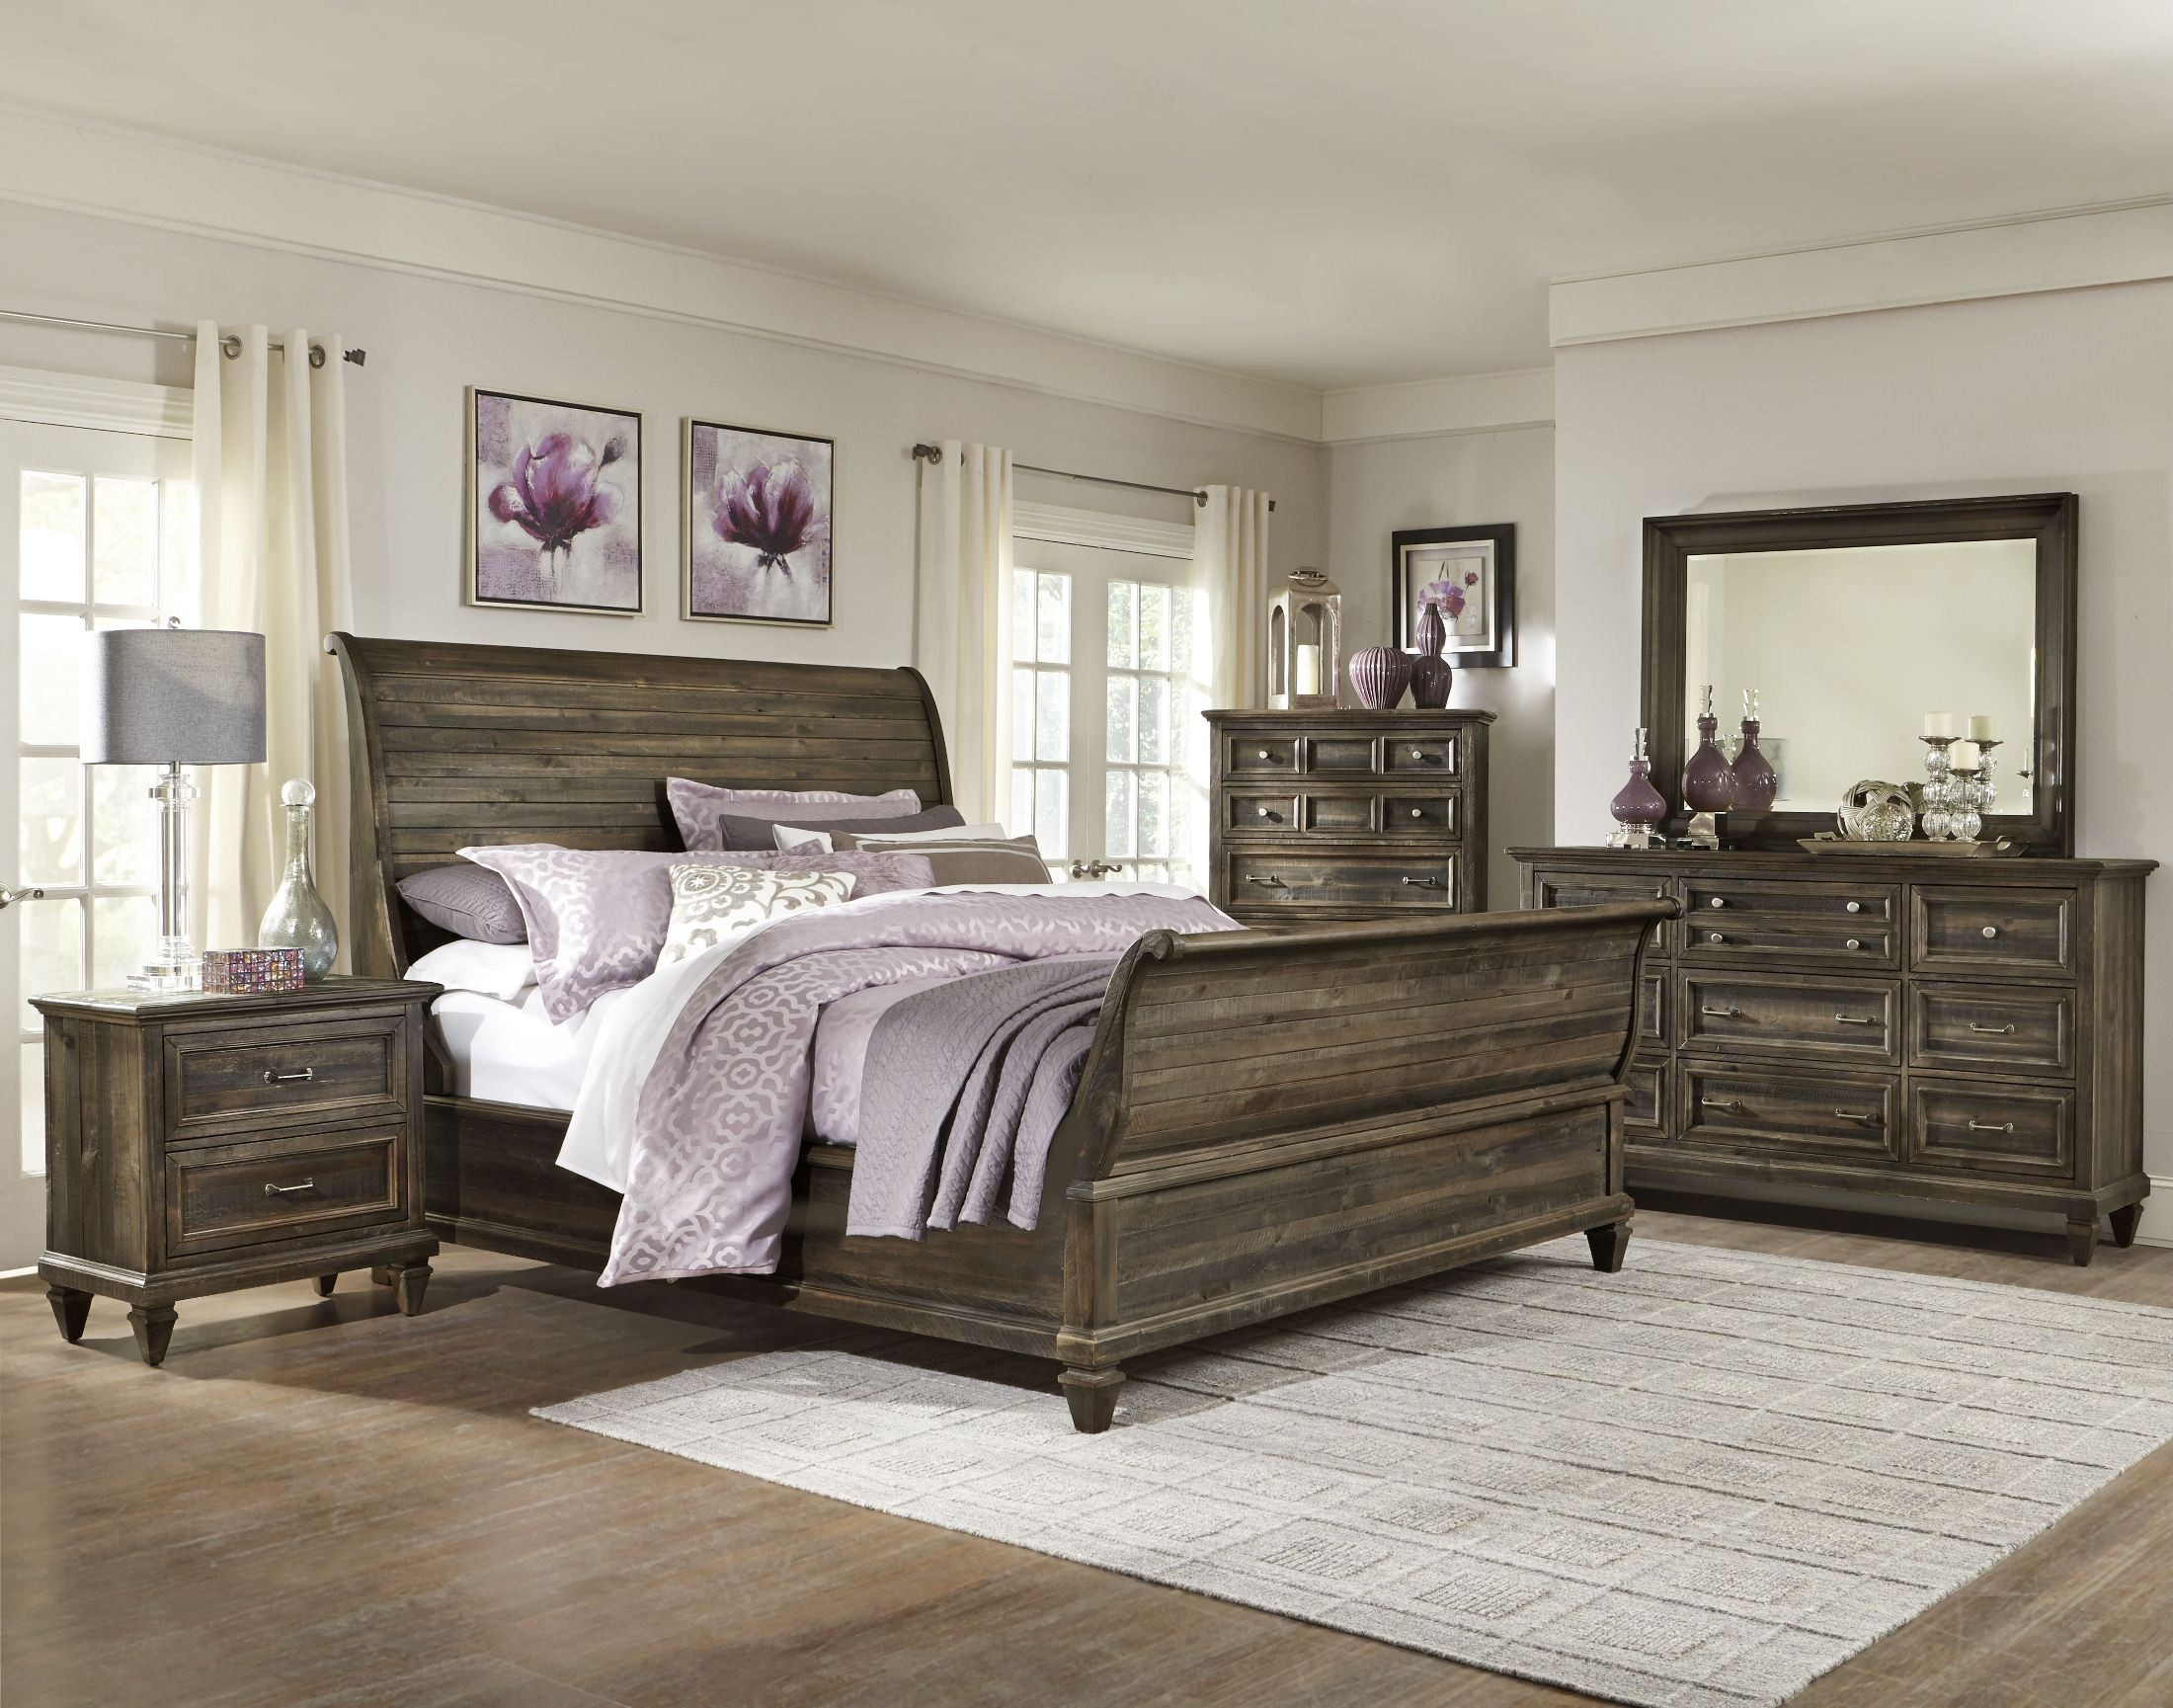 Calistoga Sleigh Bedroom Set From Magnussen Home B2590 52F 52H 52R Colema